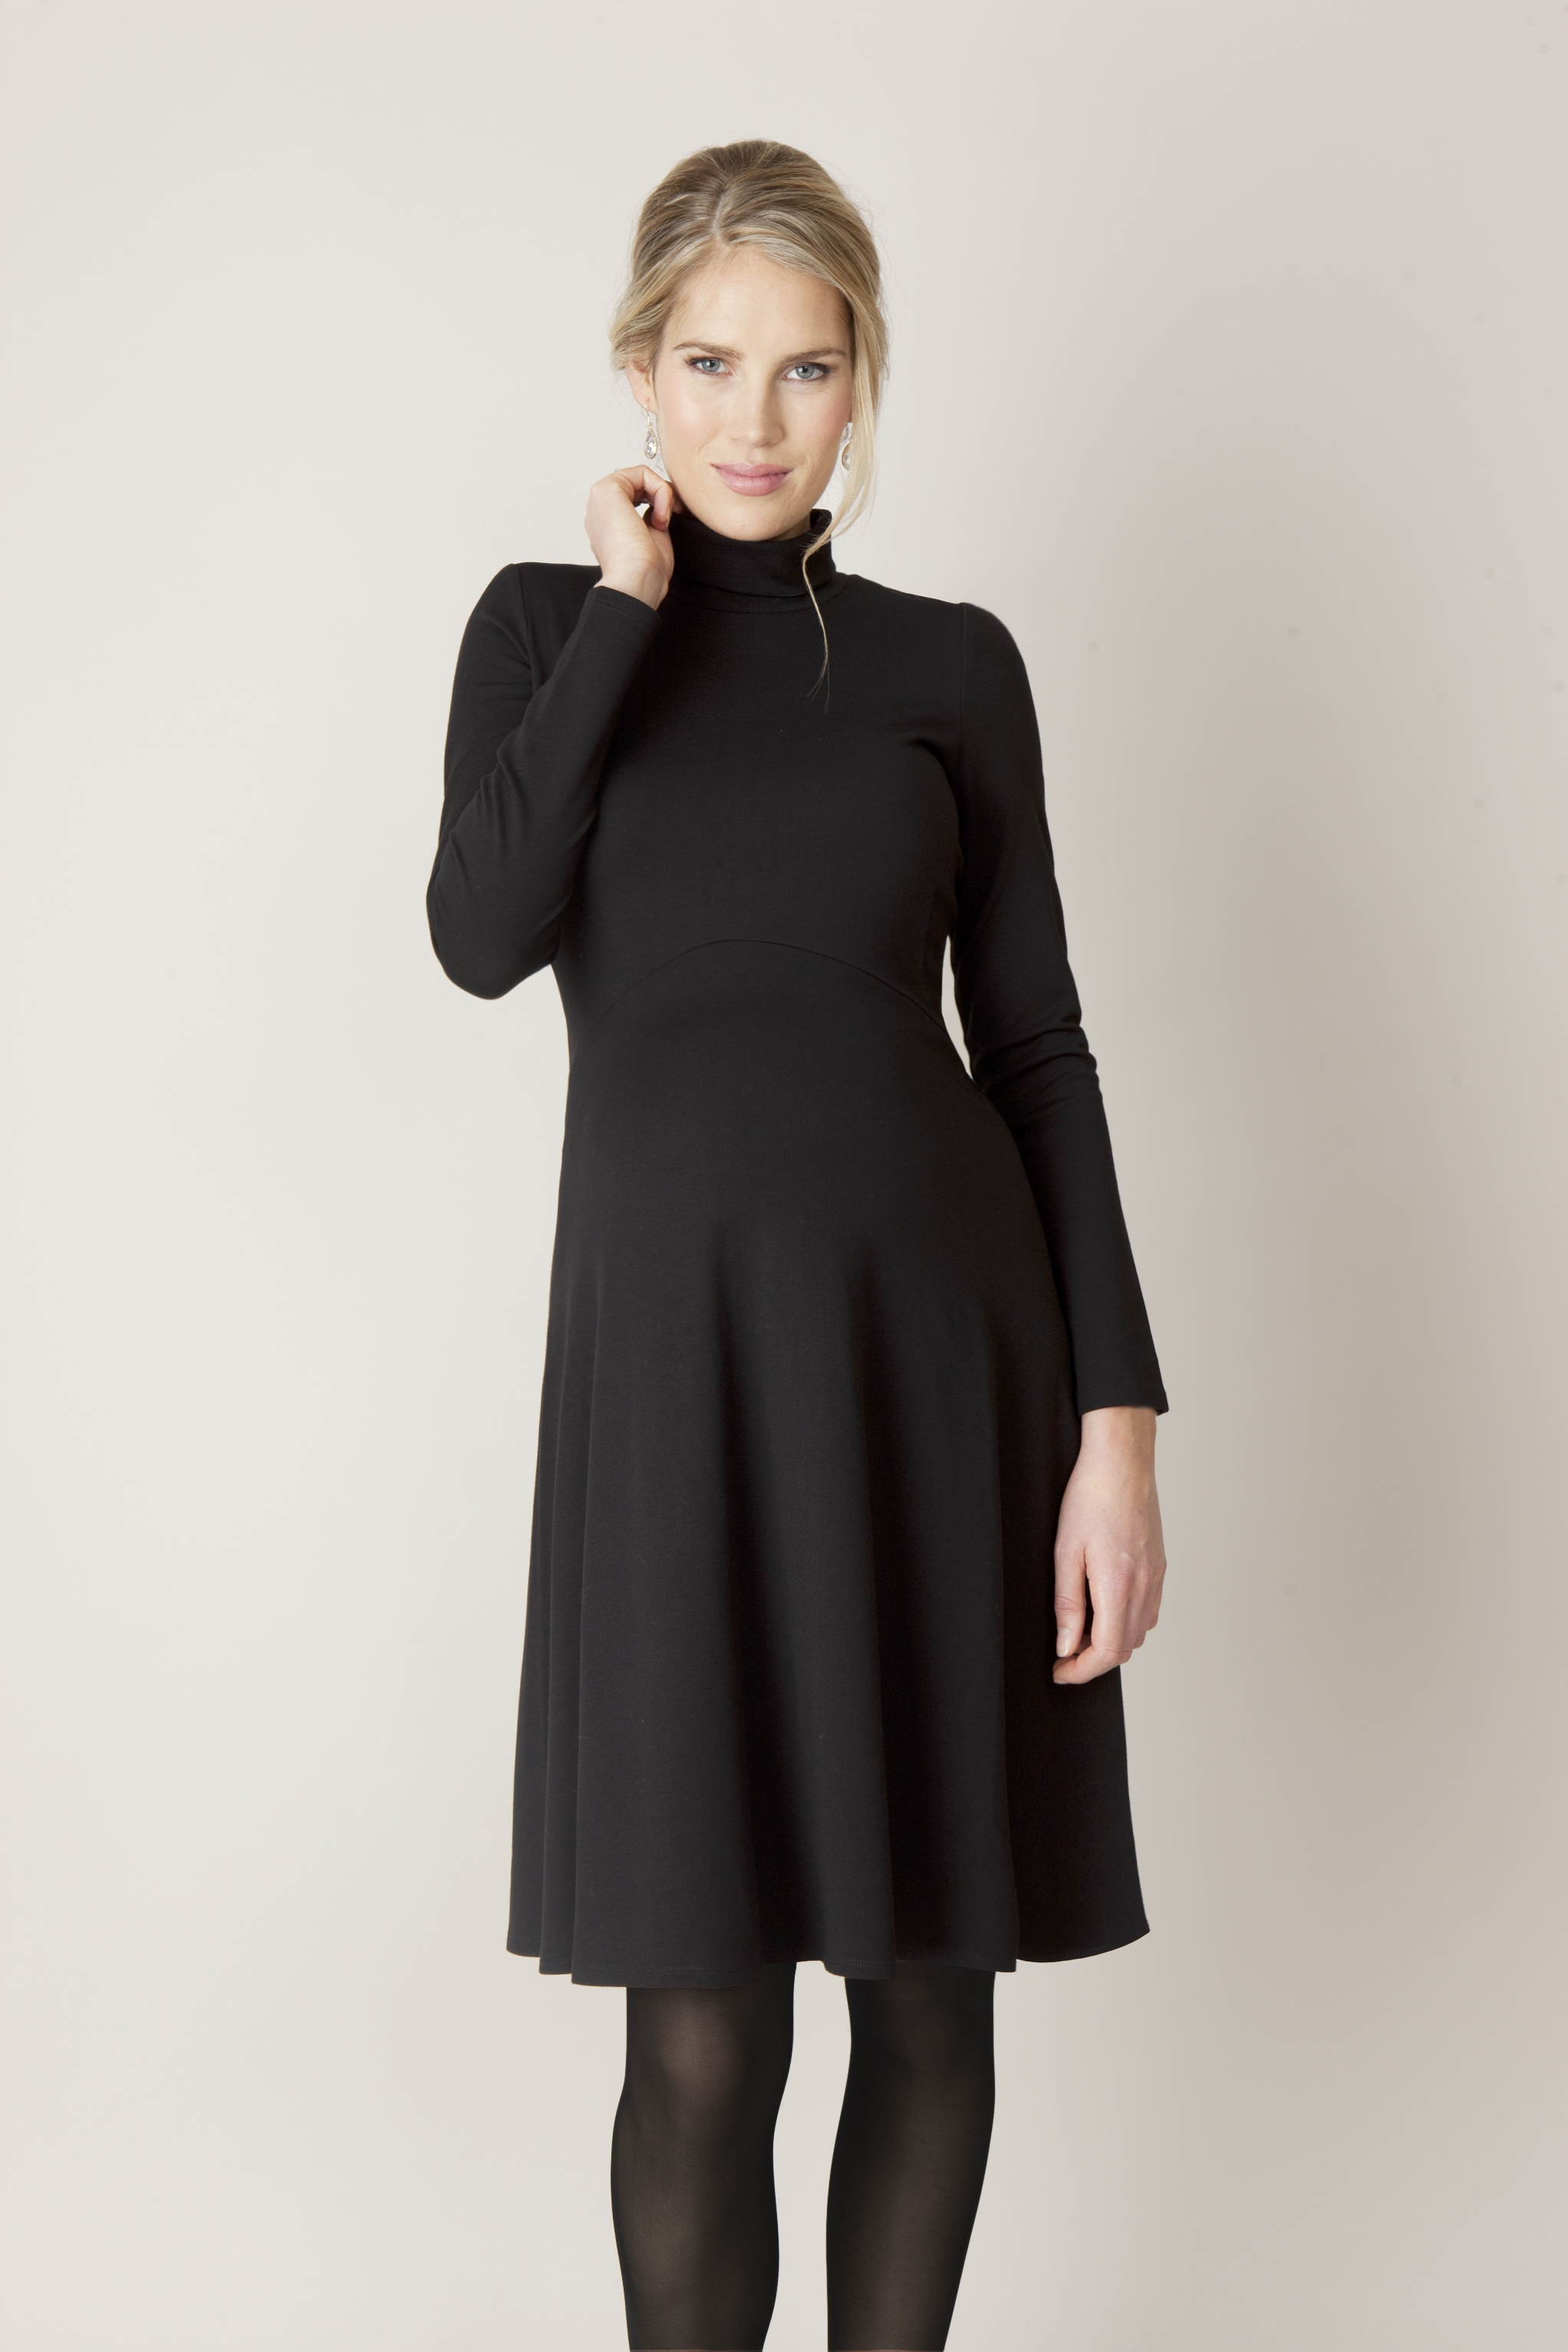 Above, a dress tailored for pregnant women from Seraphine. At right, a coat tailored for pregnant women from Hatch.